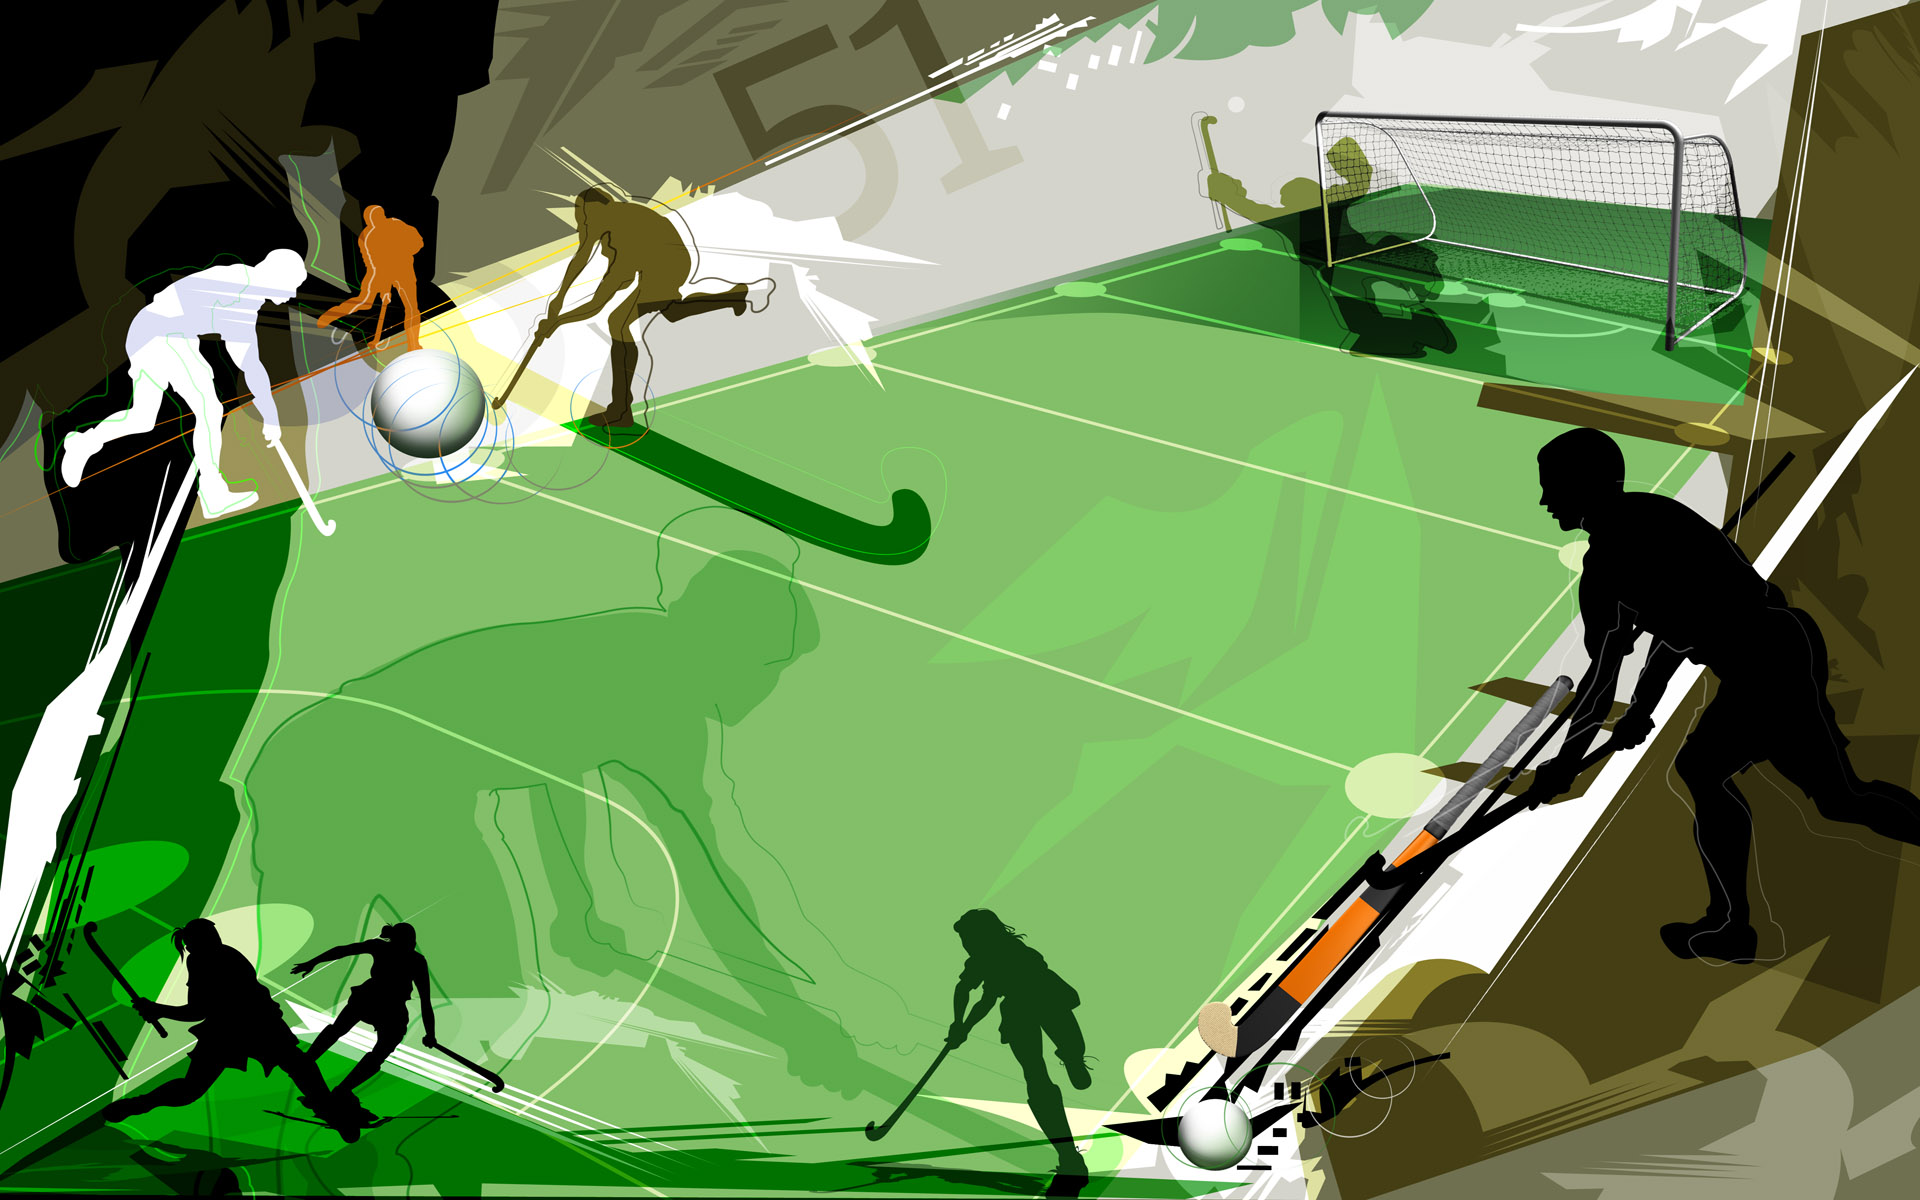 1920x1200 - Field hockey Wallpapers 26